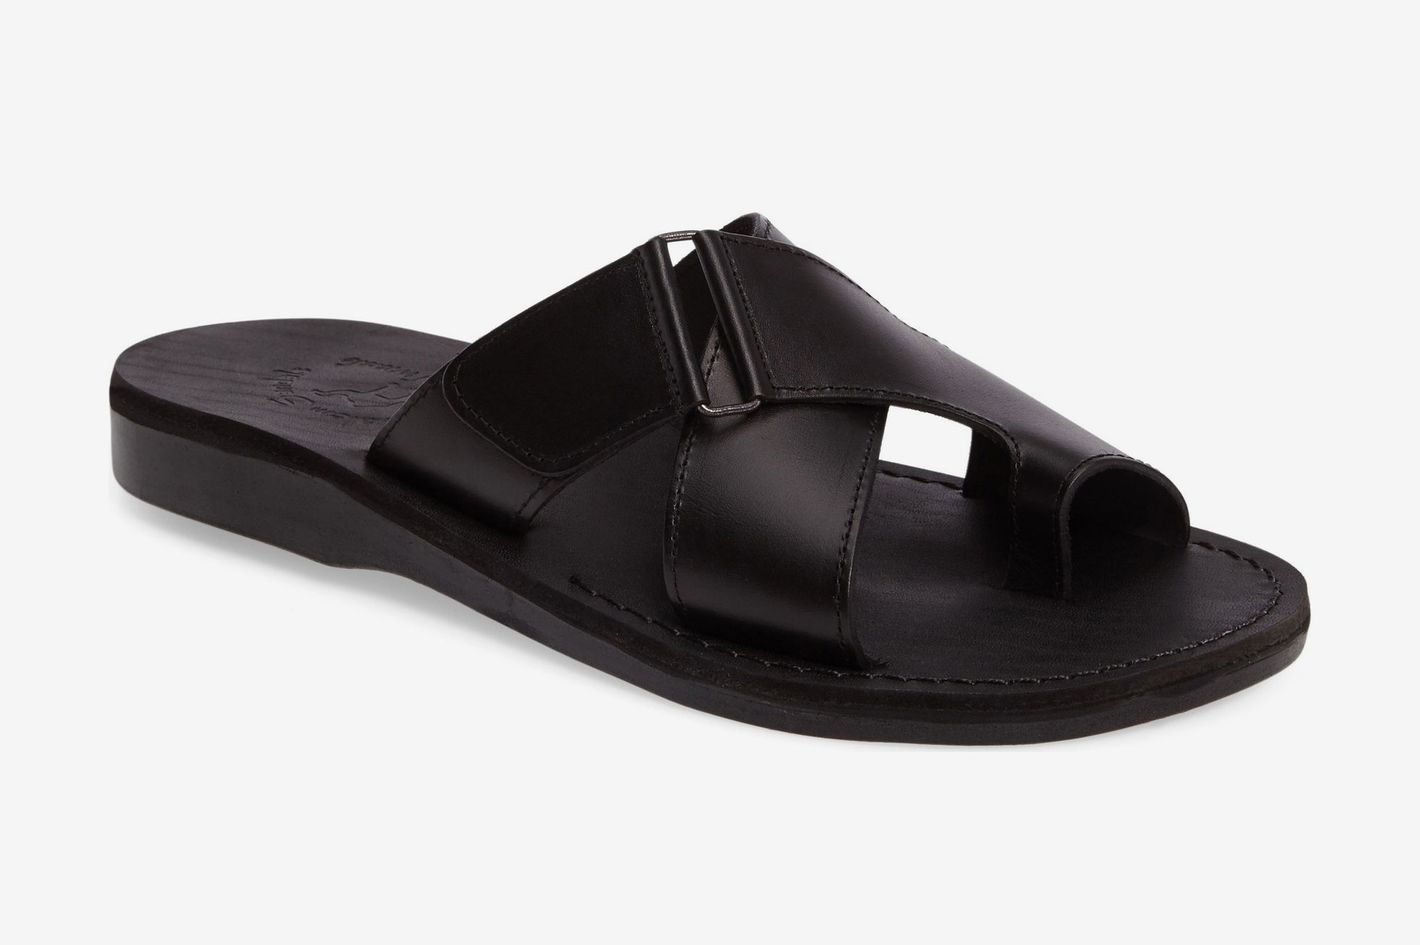 Jerusalem Sandals Asher Slide Sandal